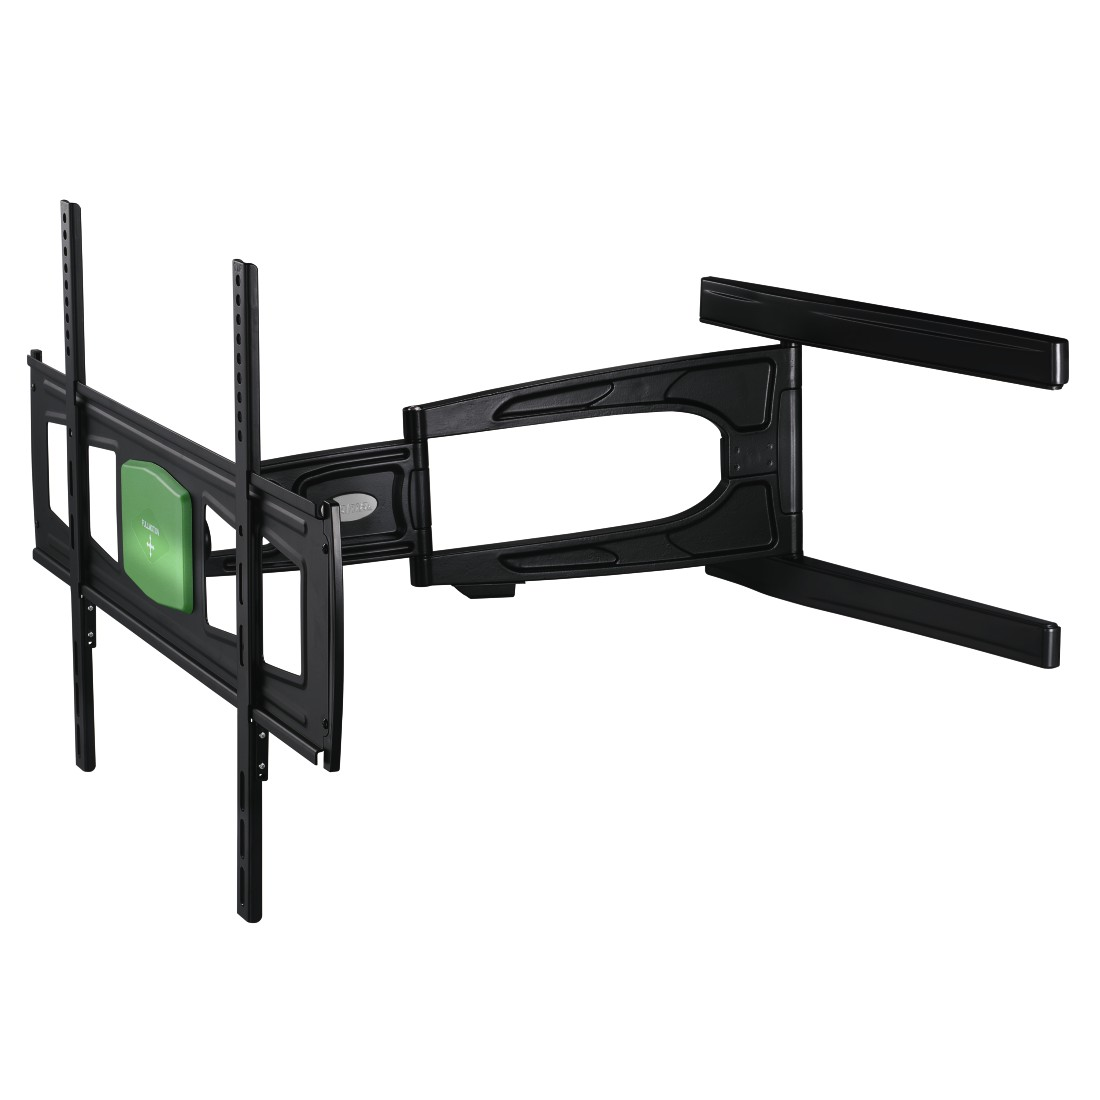 "dex7 High-Res Detail 7 - Hama, FULLMOTION TV Wall Bracket, 3 Stars, 165cm (65""), 2 Arm, black"